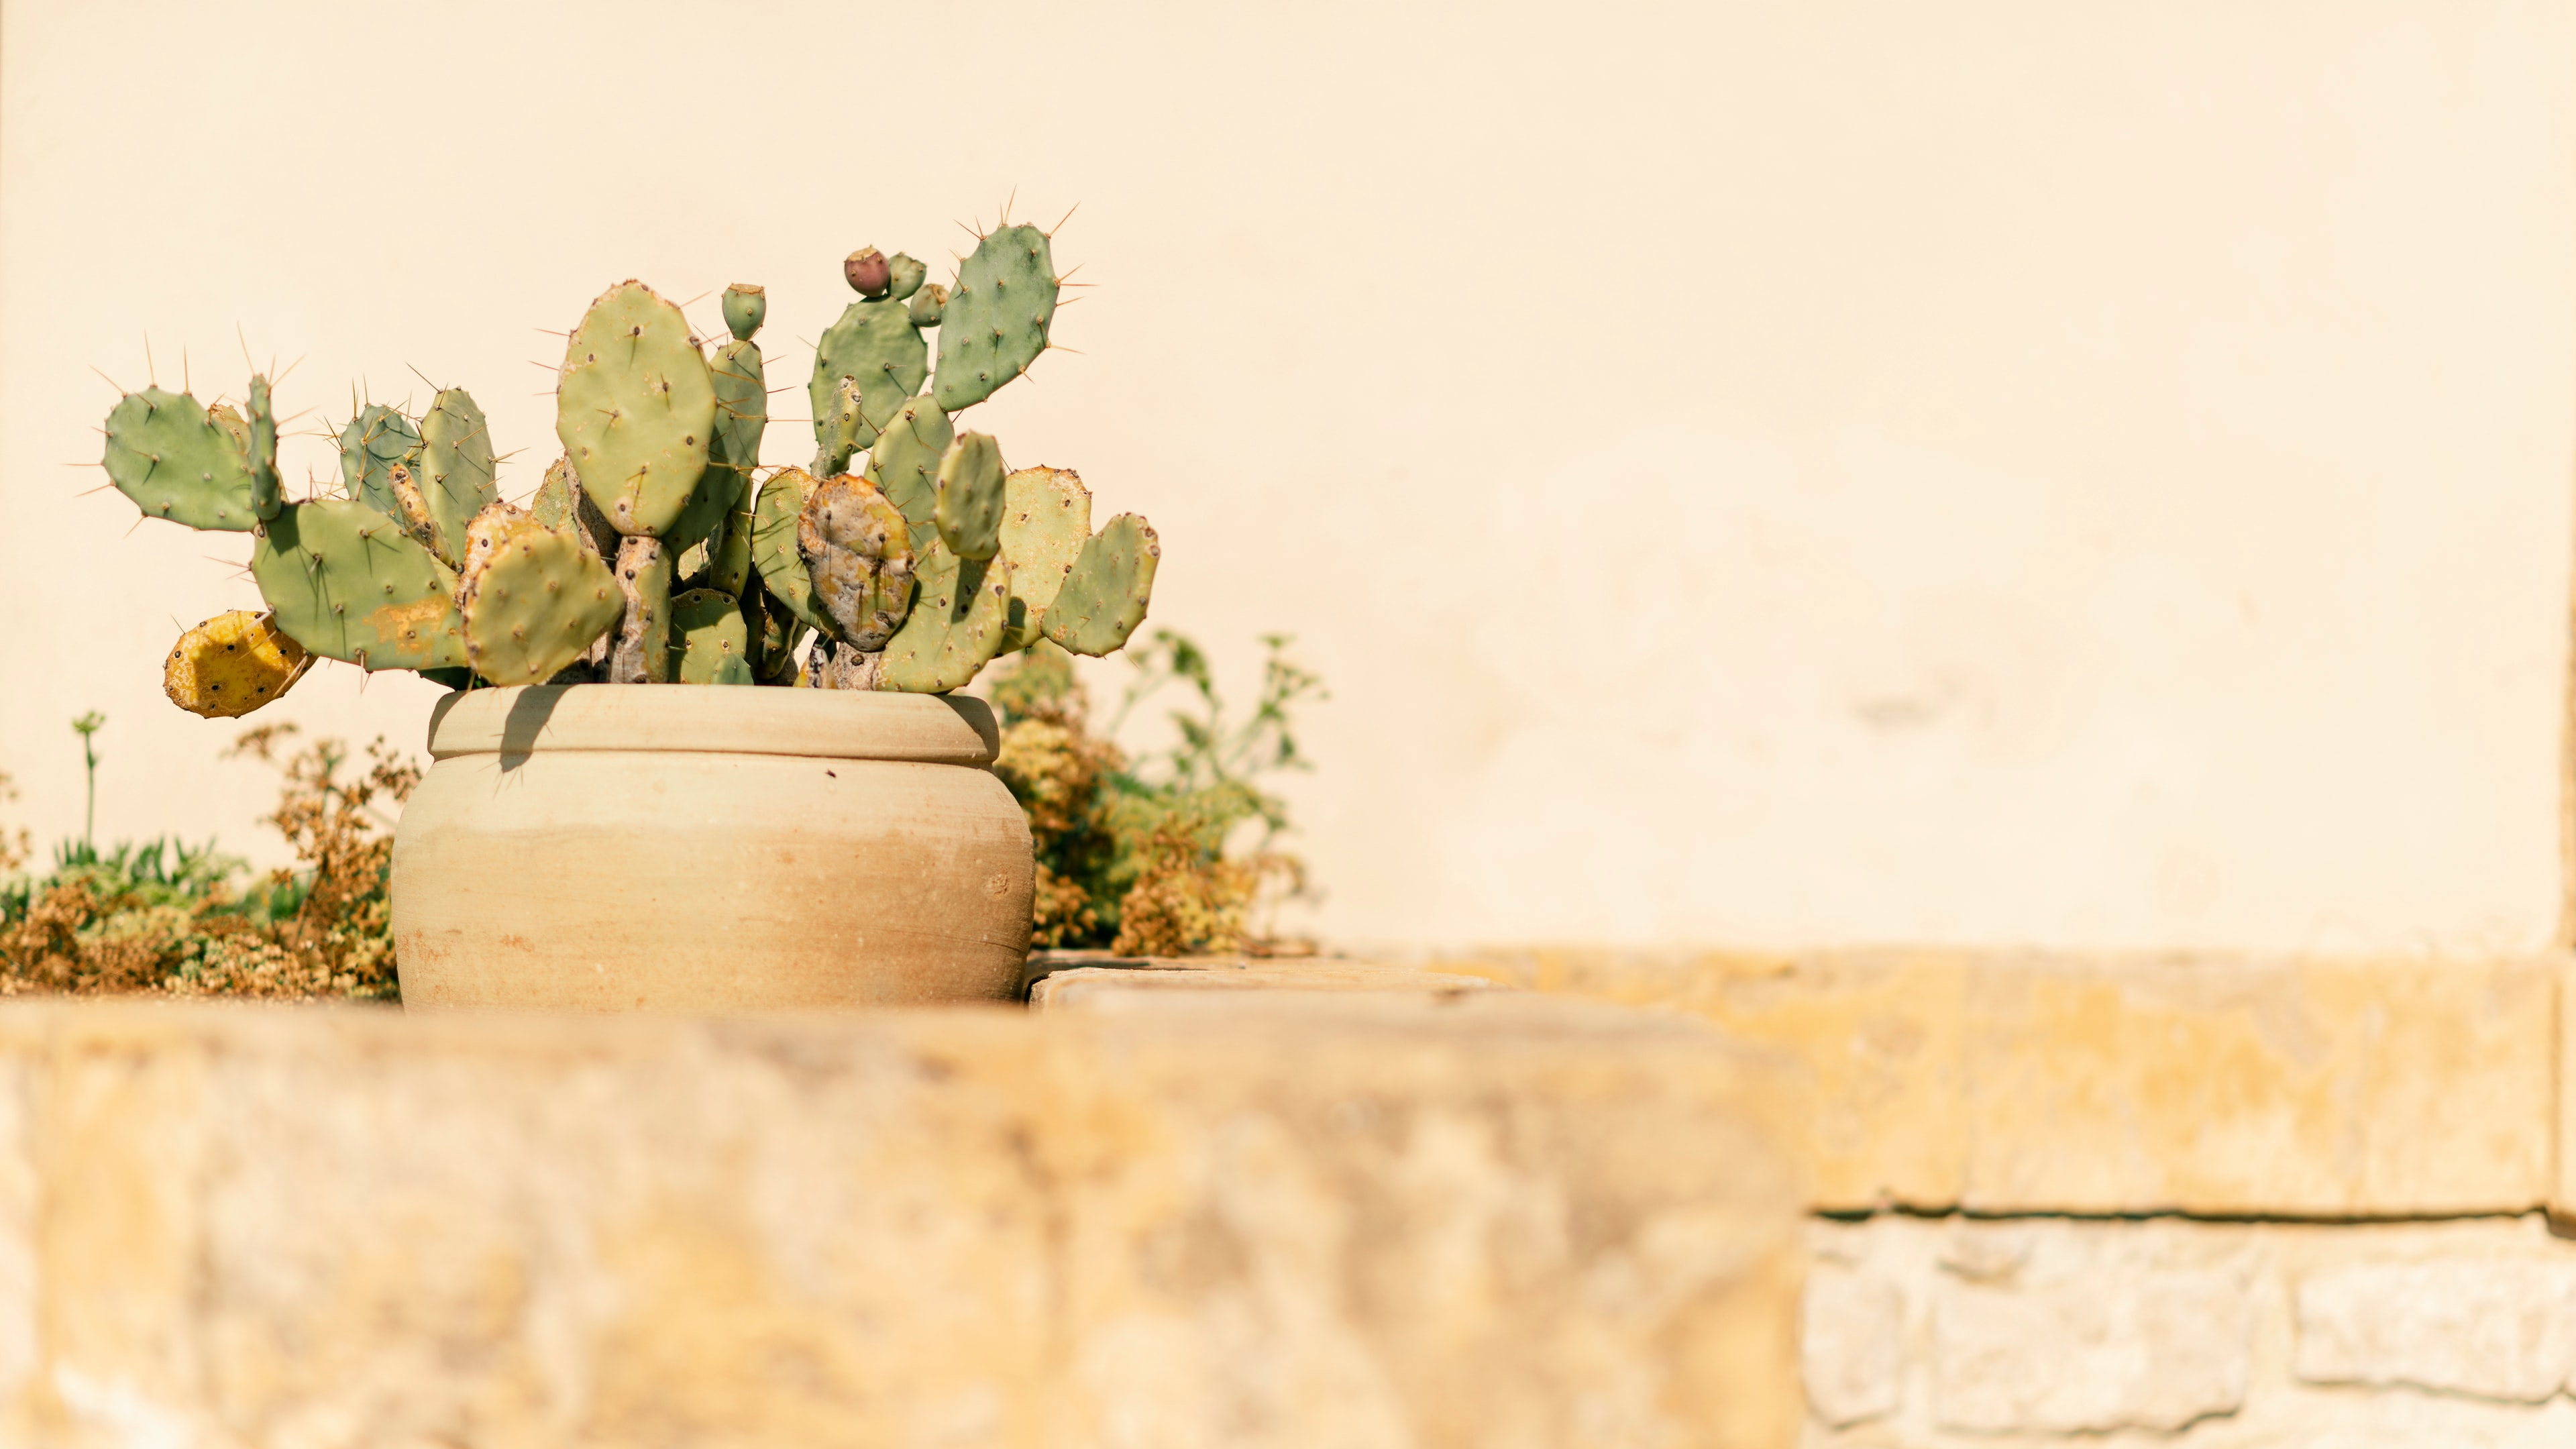 green cacti on brown ceramic pot